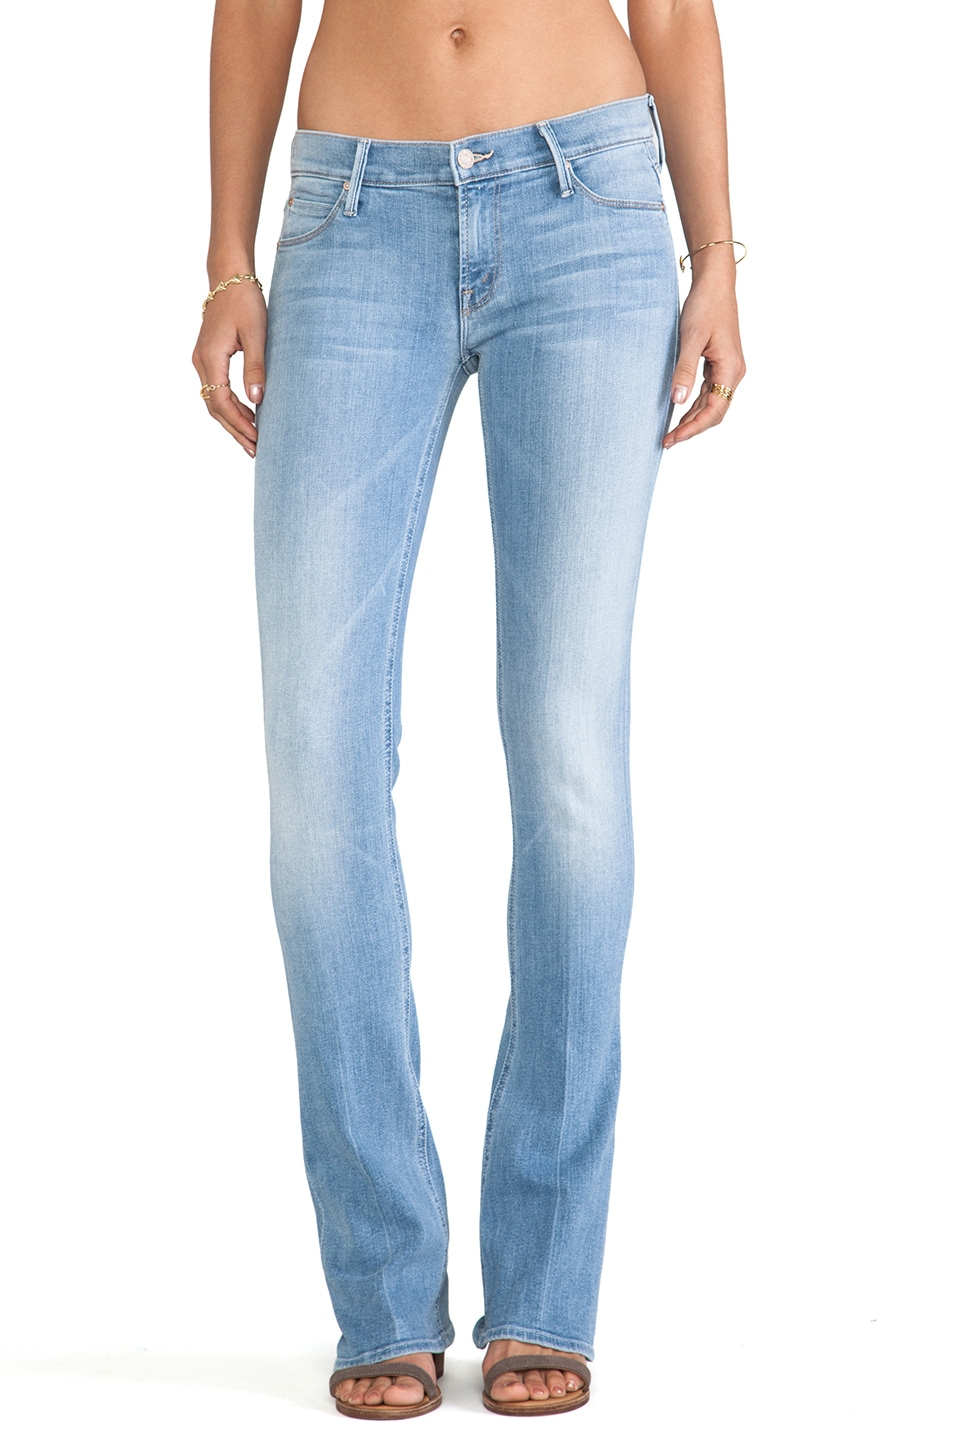 MOTHER The Runaway Skinny Flare Jeans in Light Kitty